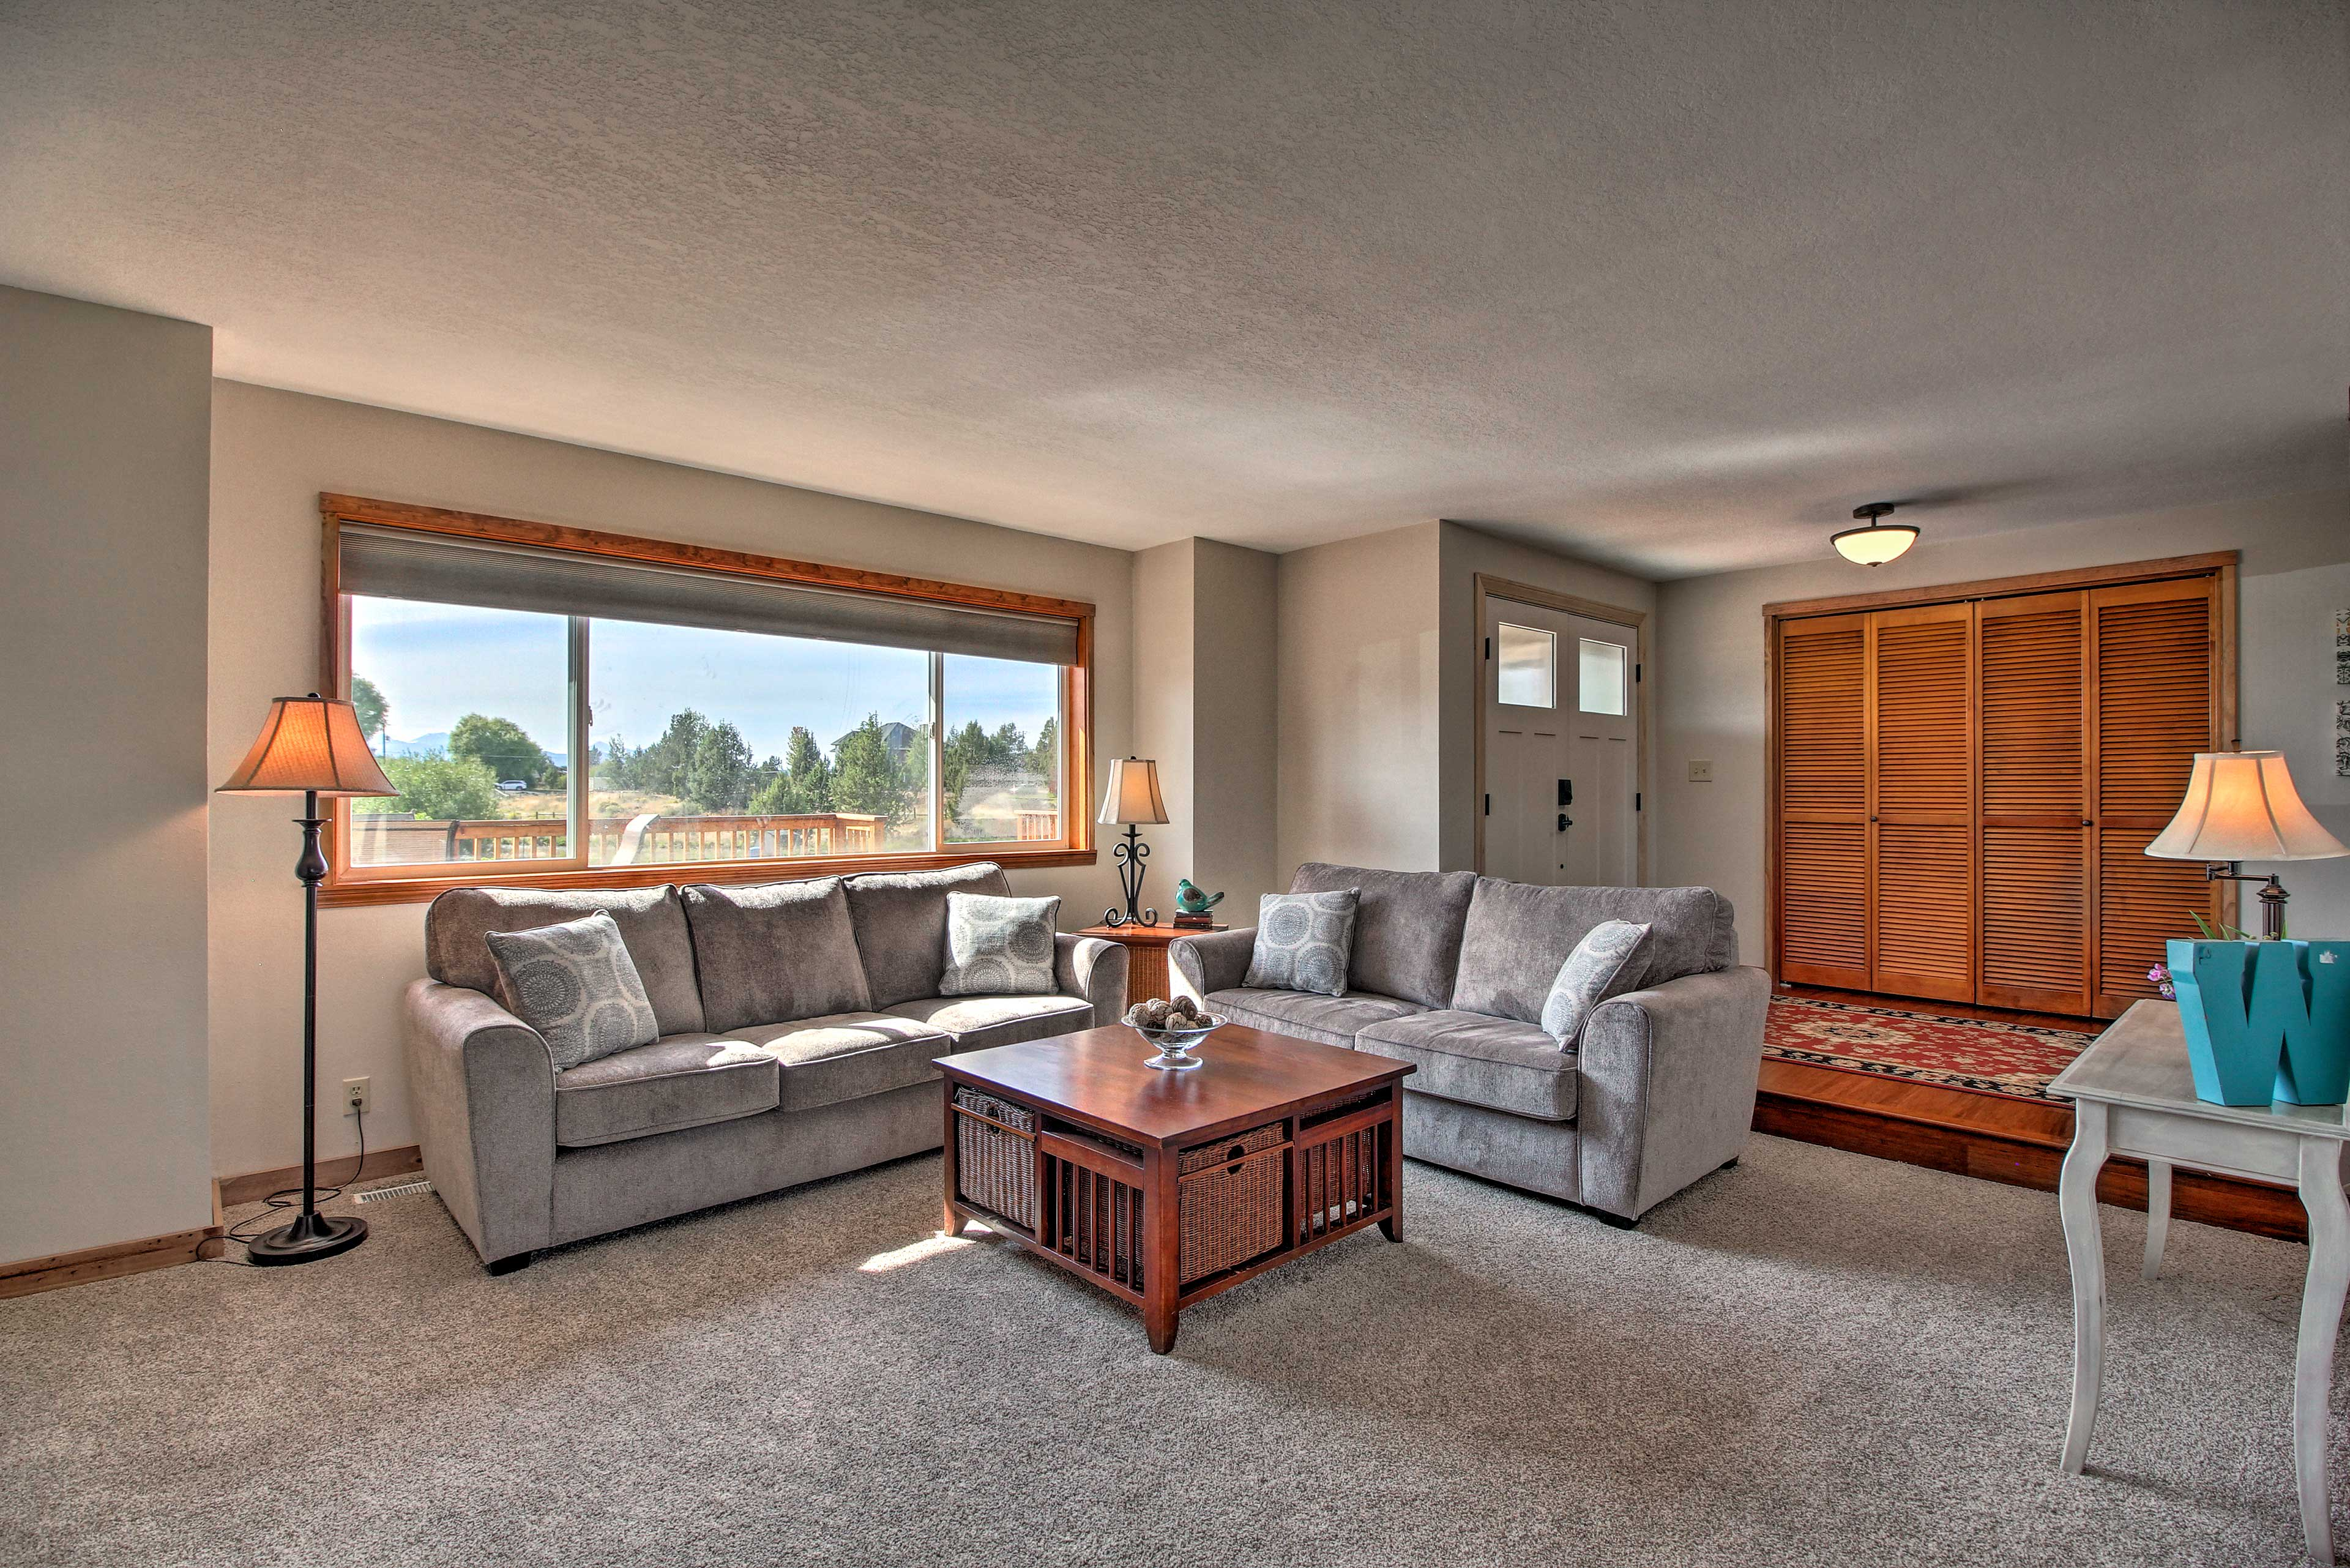 Natural light pours through large picture windows.